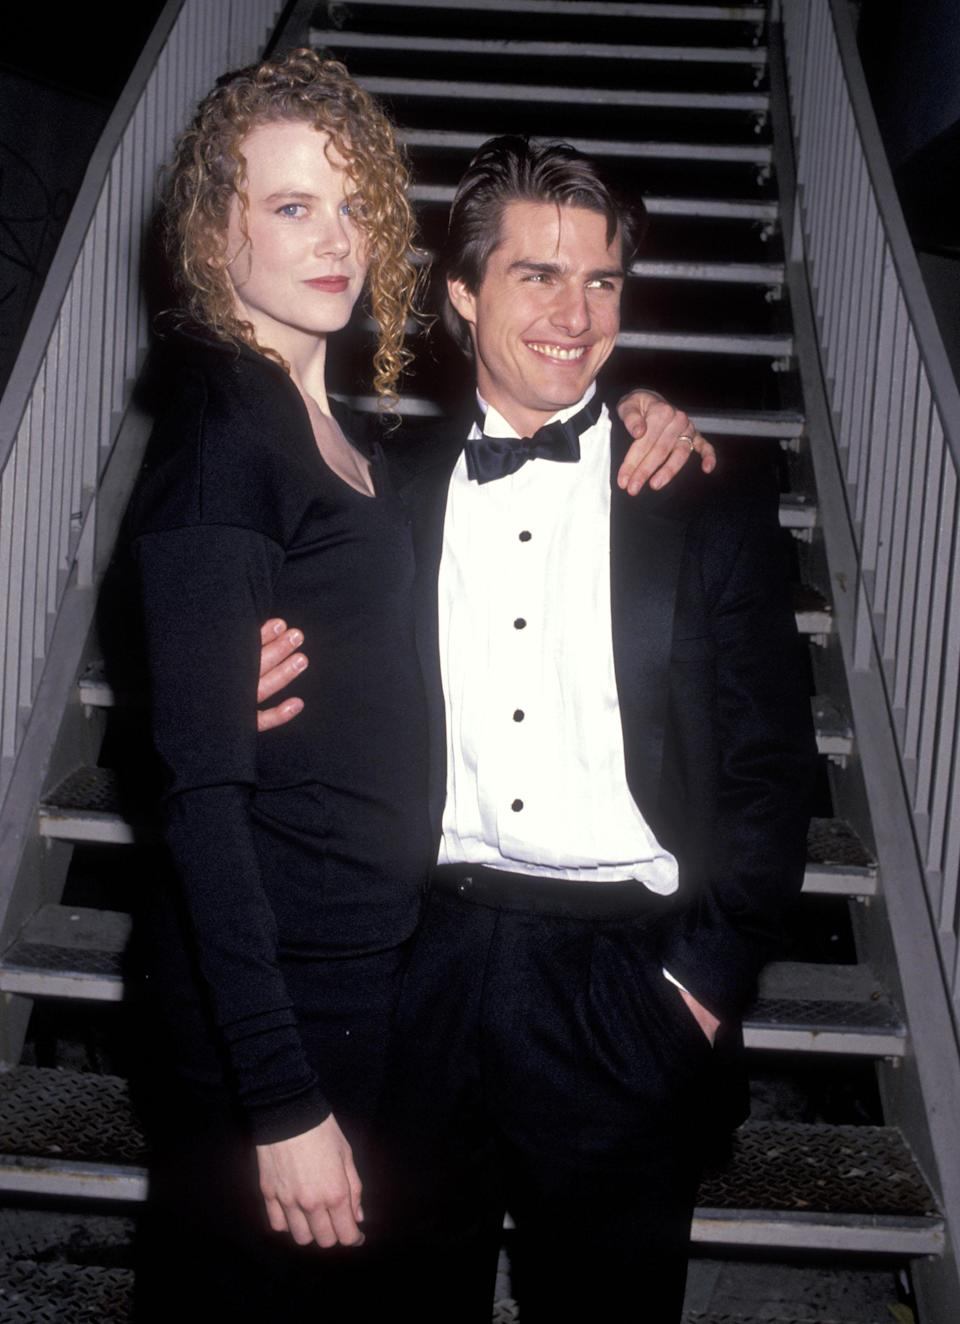 Kidman, pictured in 1991, was married to actor Tom Cruise when she experienced both pregnancy losses. (Photo: Getty Images)